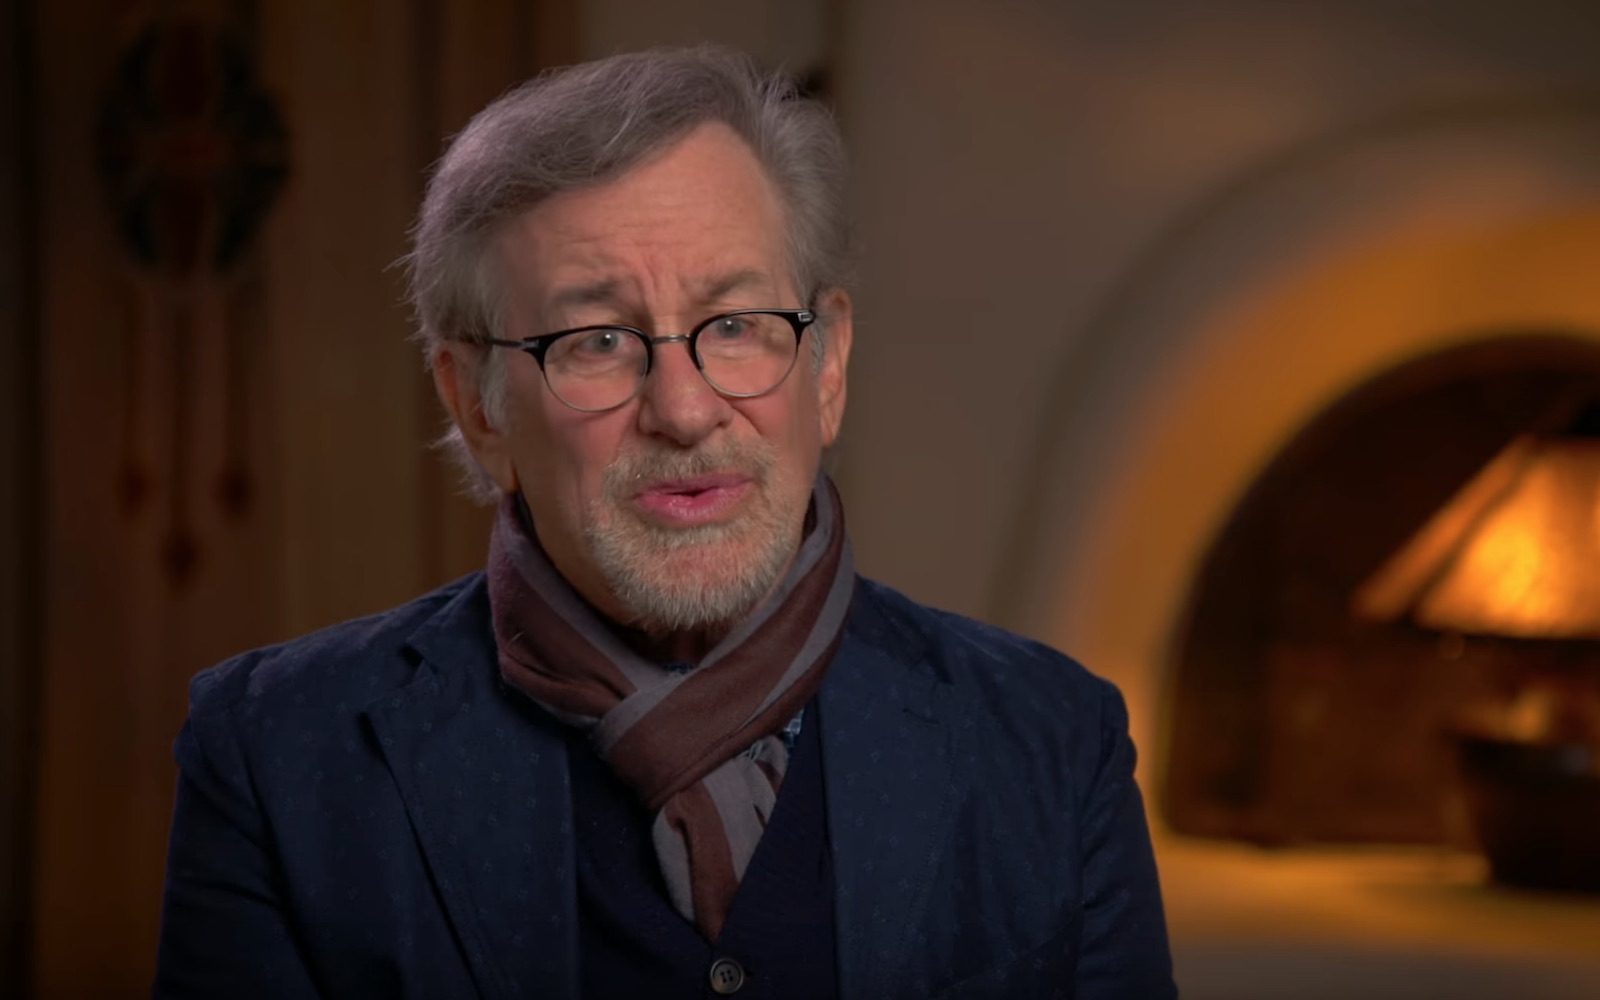 Steven Spielberg: [Ready Player One] Wasn't That Far Away From What I Think Is Going To Happen Some Day